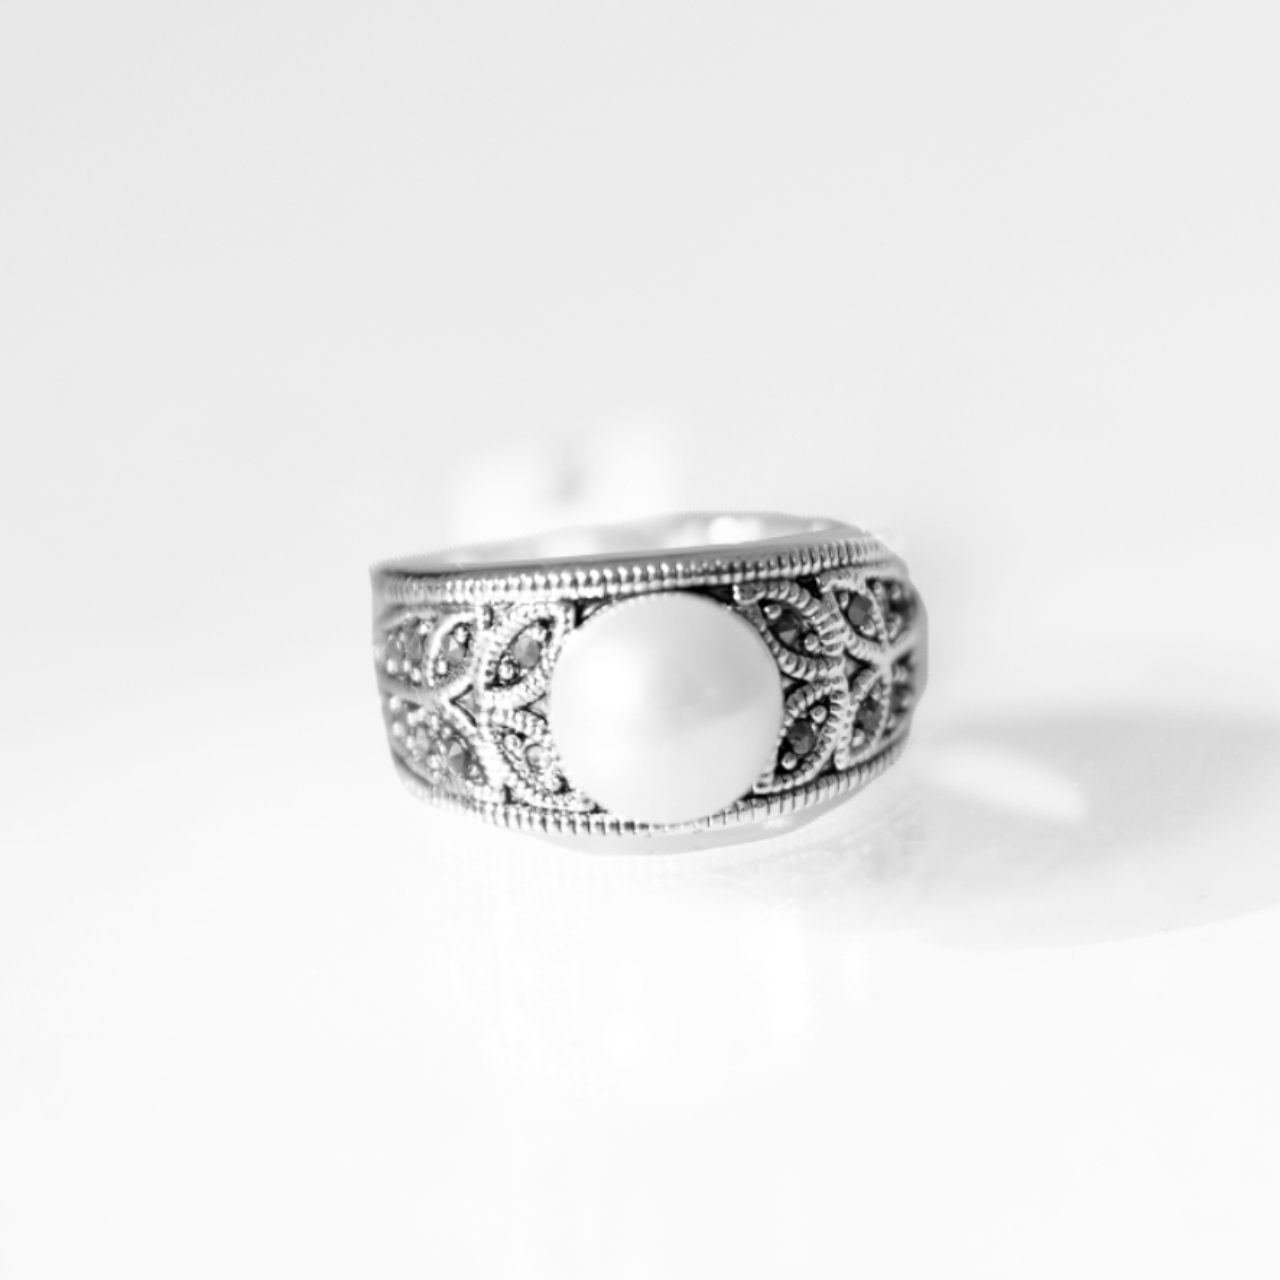 Product Image 1 - Silver cocktail ring sterling pearl